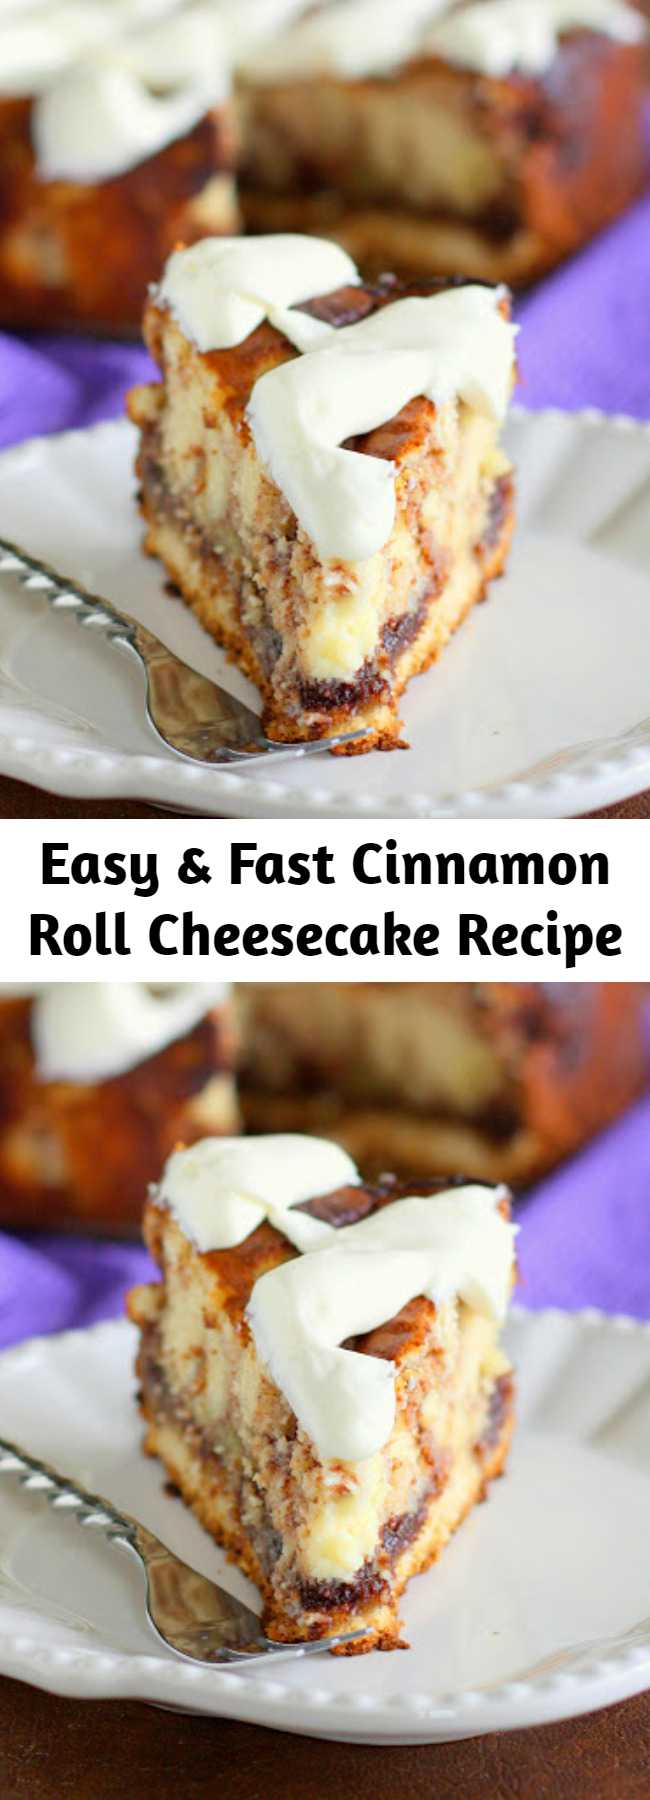 This Cinnamon Roll Cheesecake is cheesecake with cinnamon roll dough base and buttery cinnamon swirled throughout. The top is frosted with thick cream cheese frosting.